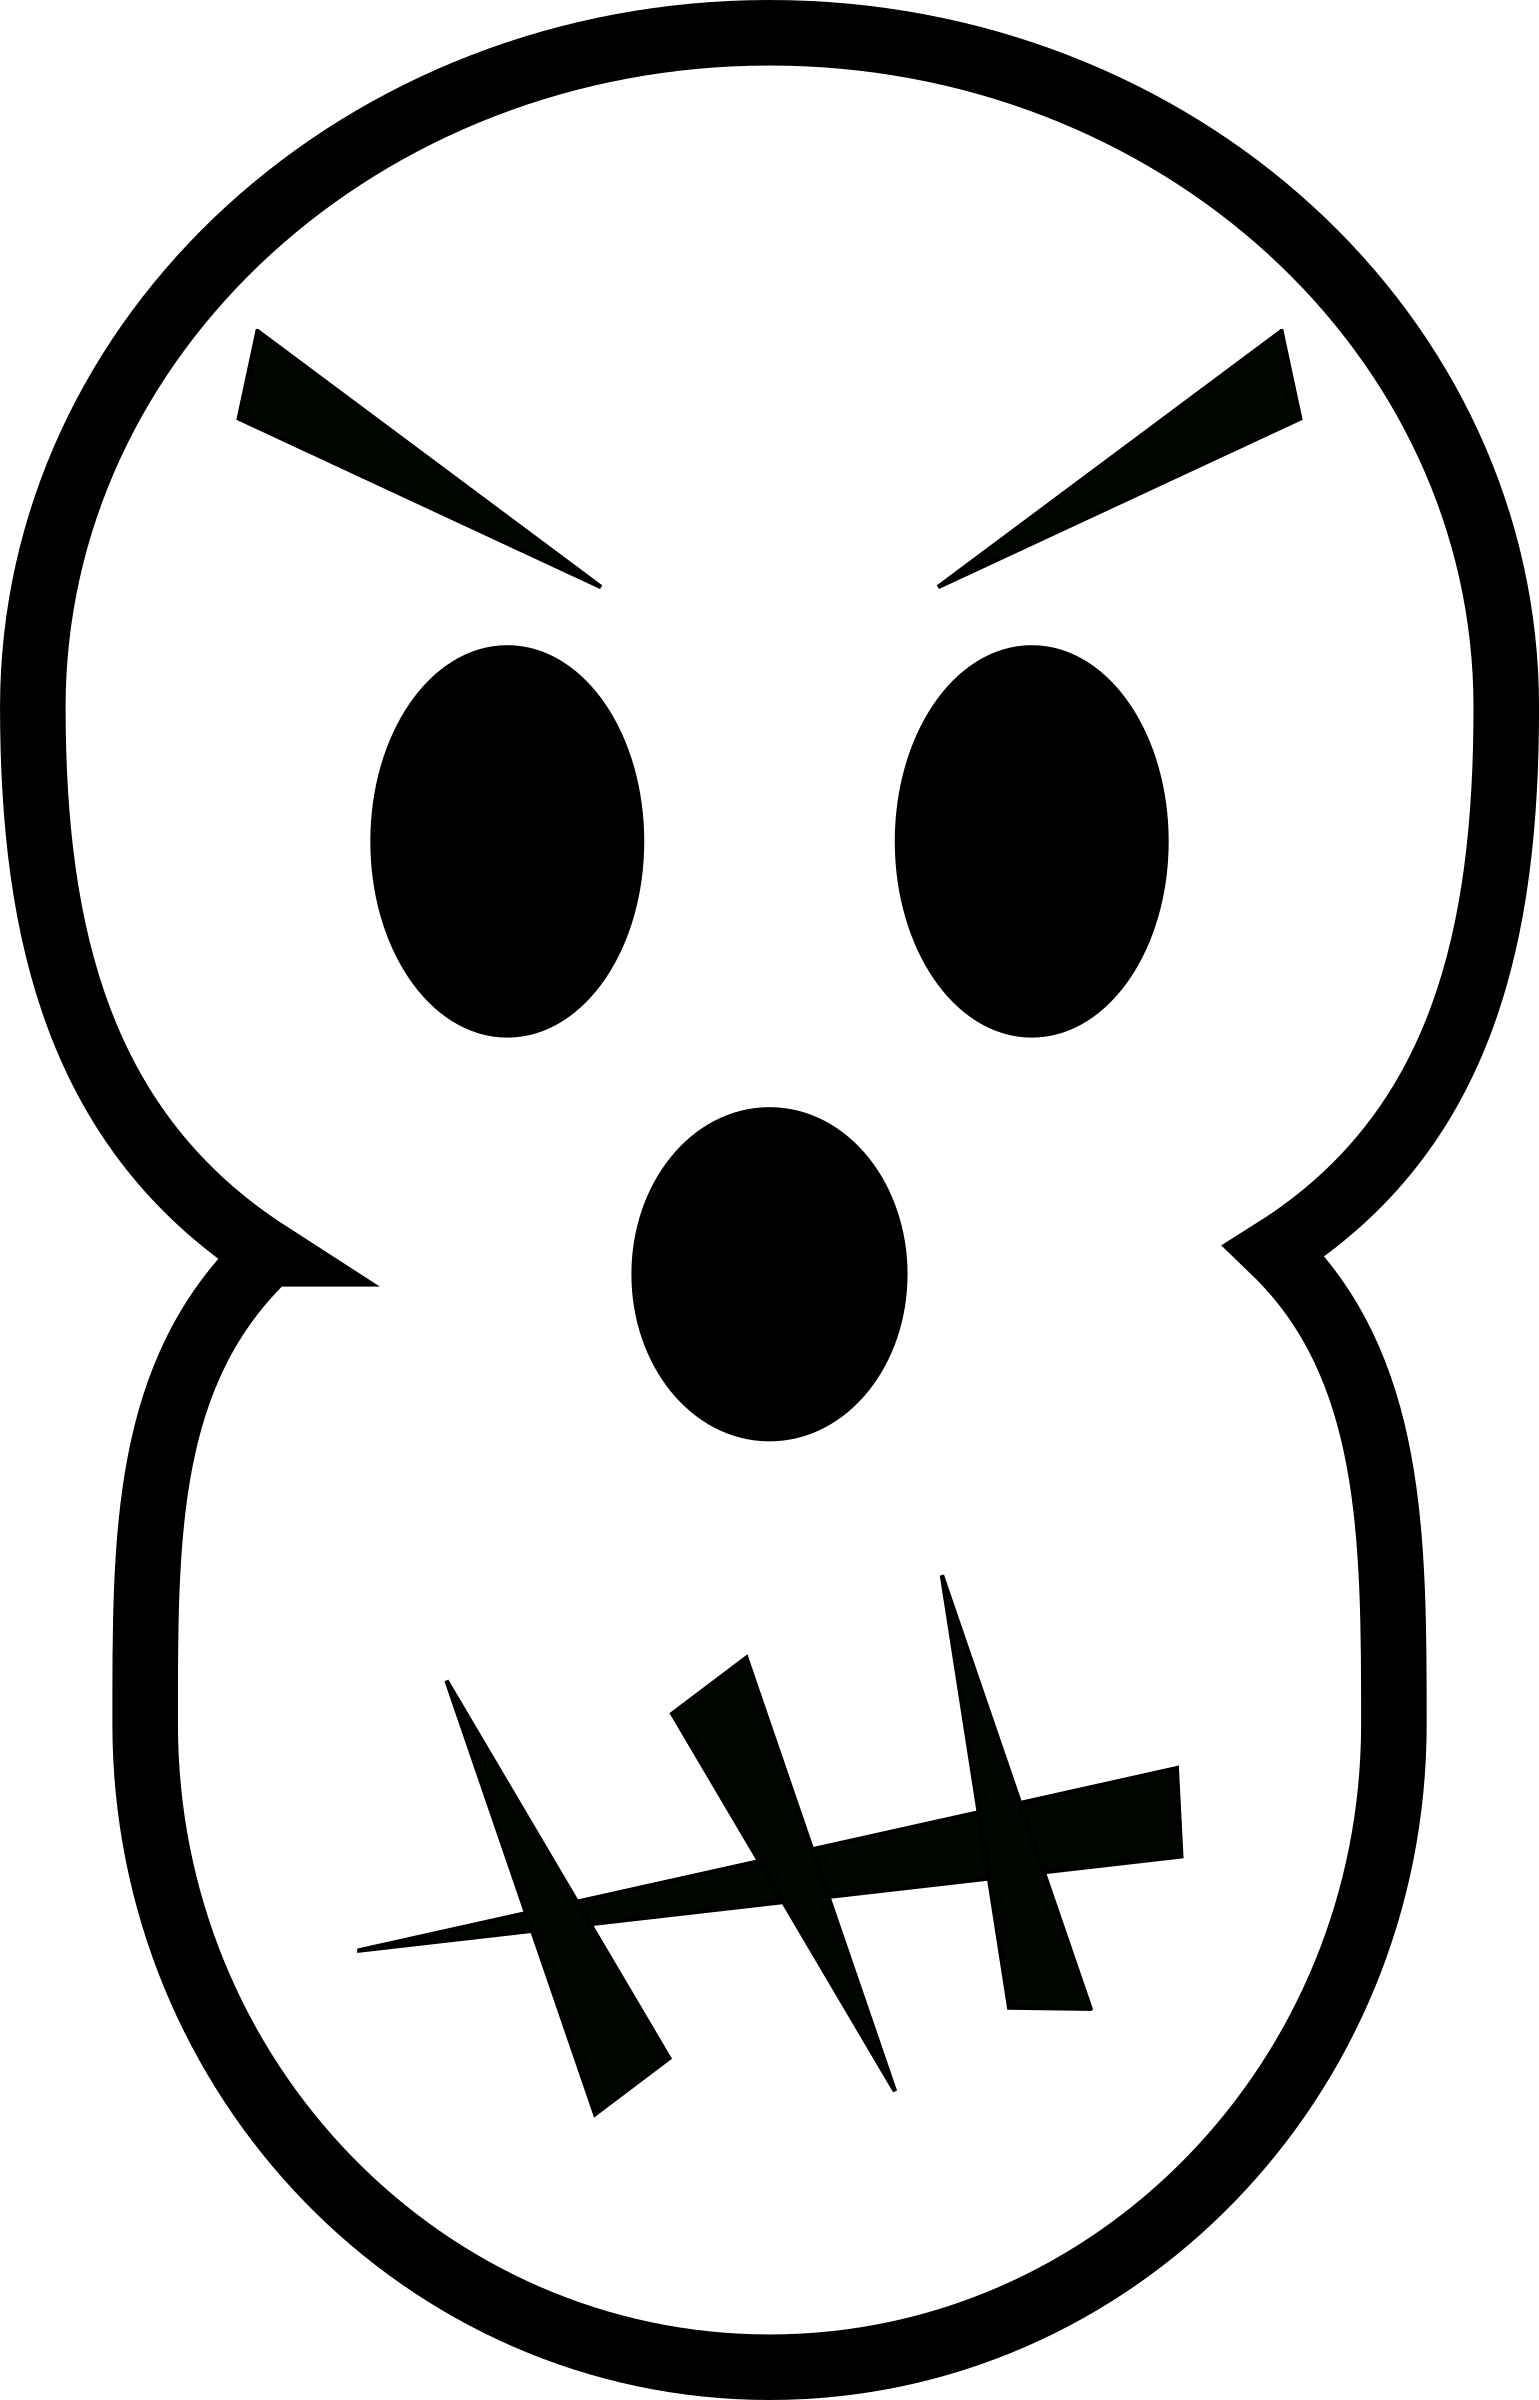 Angry book clipart picture black and white download Clipart - Angry skull picture black and white download